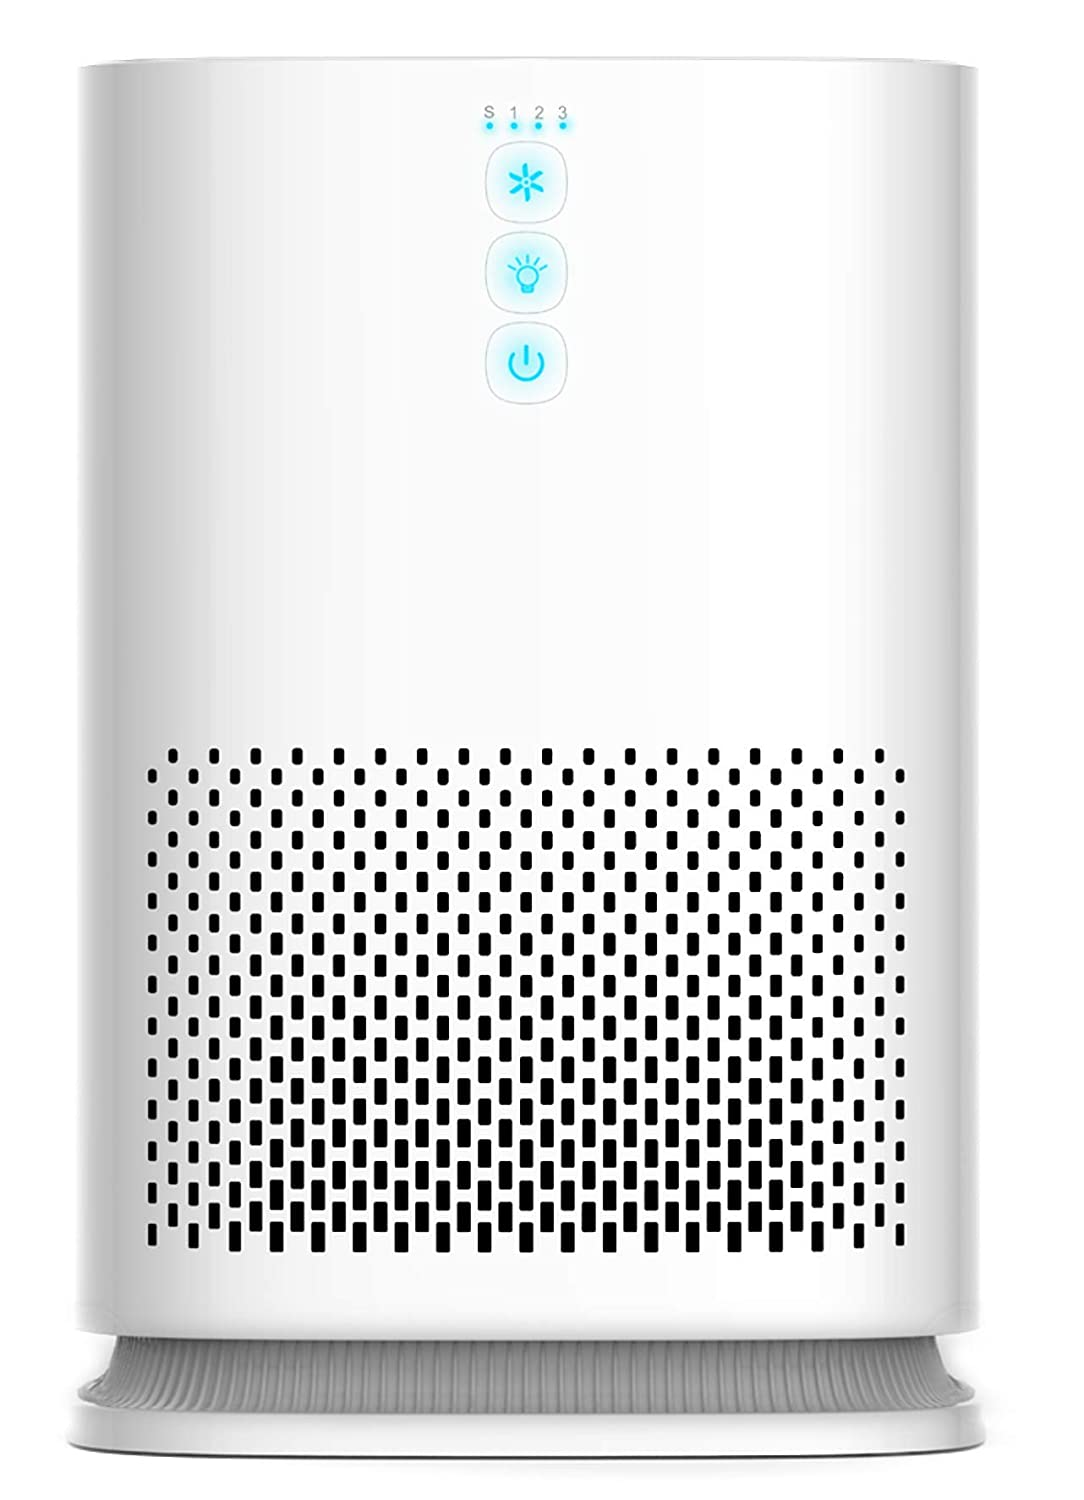 Medify MA-14 Medical Grade True HEPA (H13 99.97%) Air Purifier